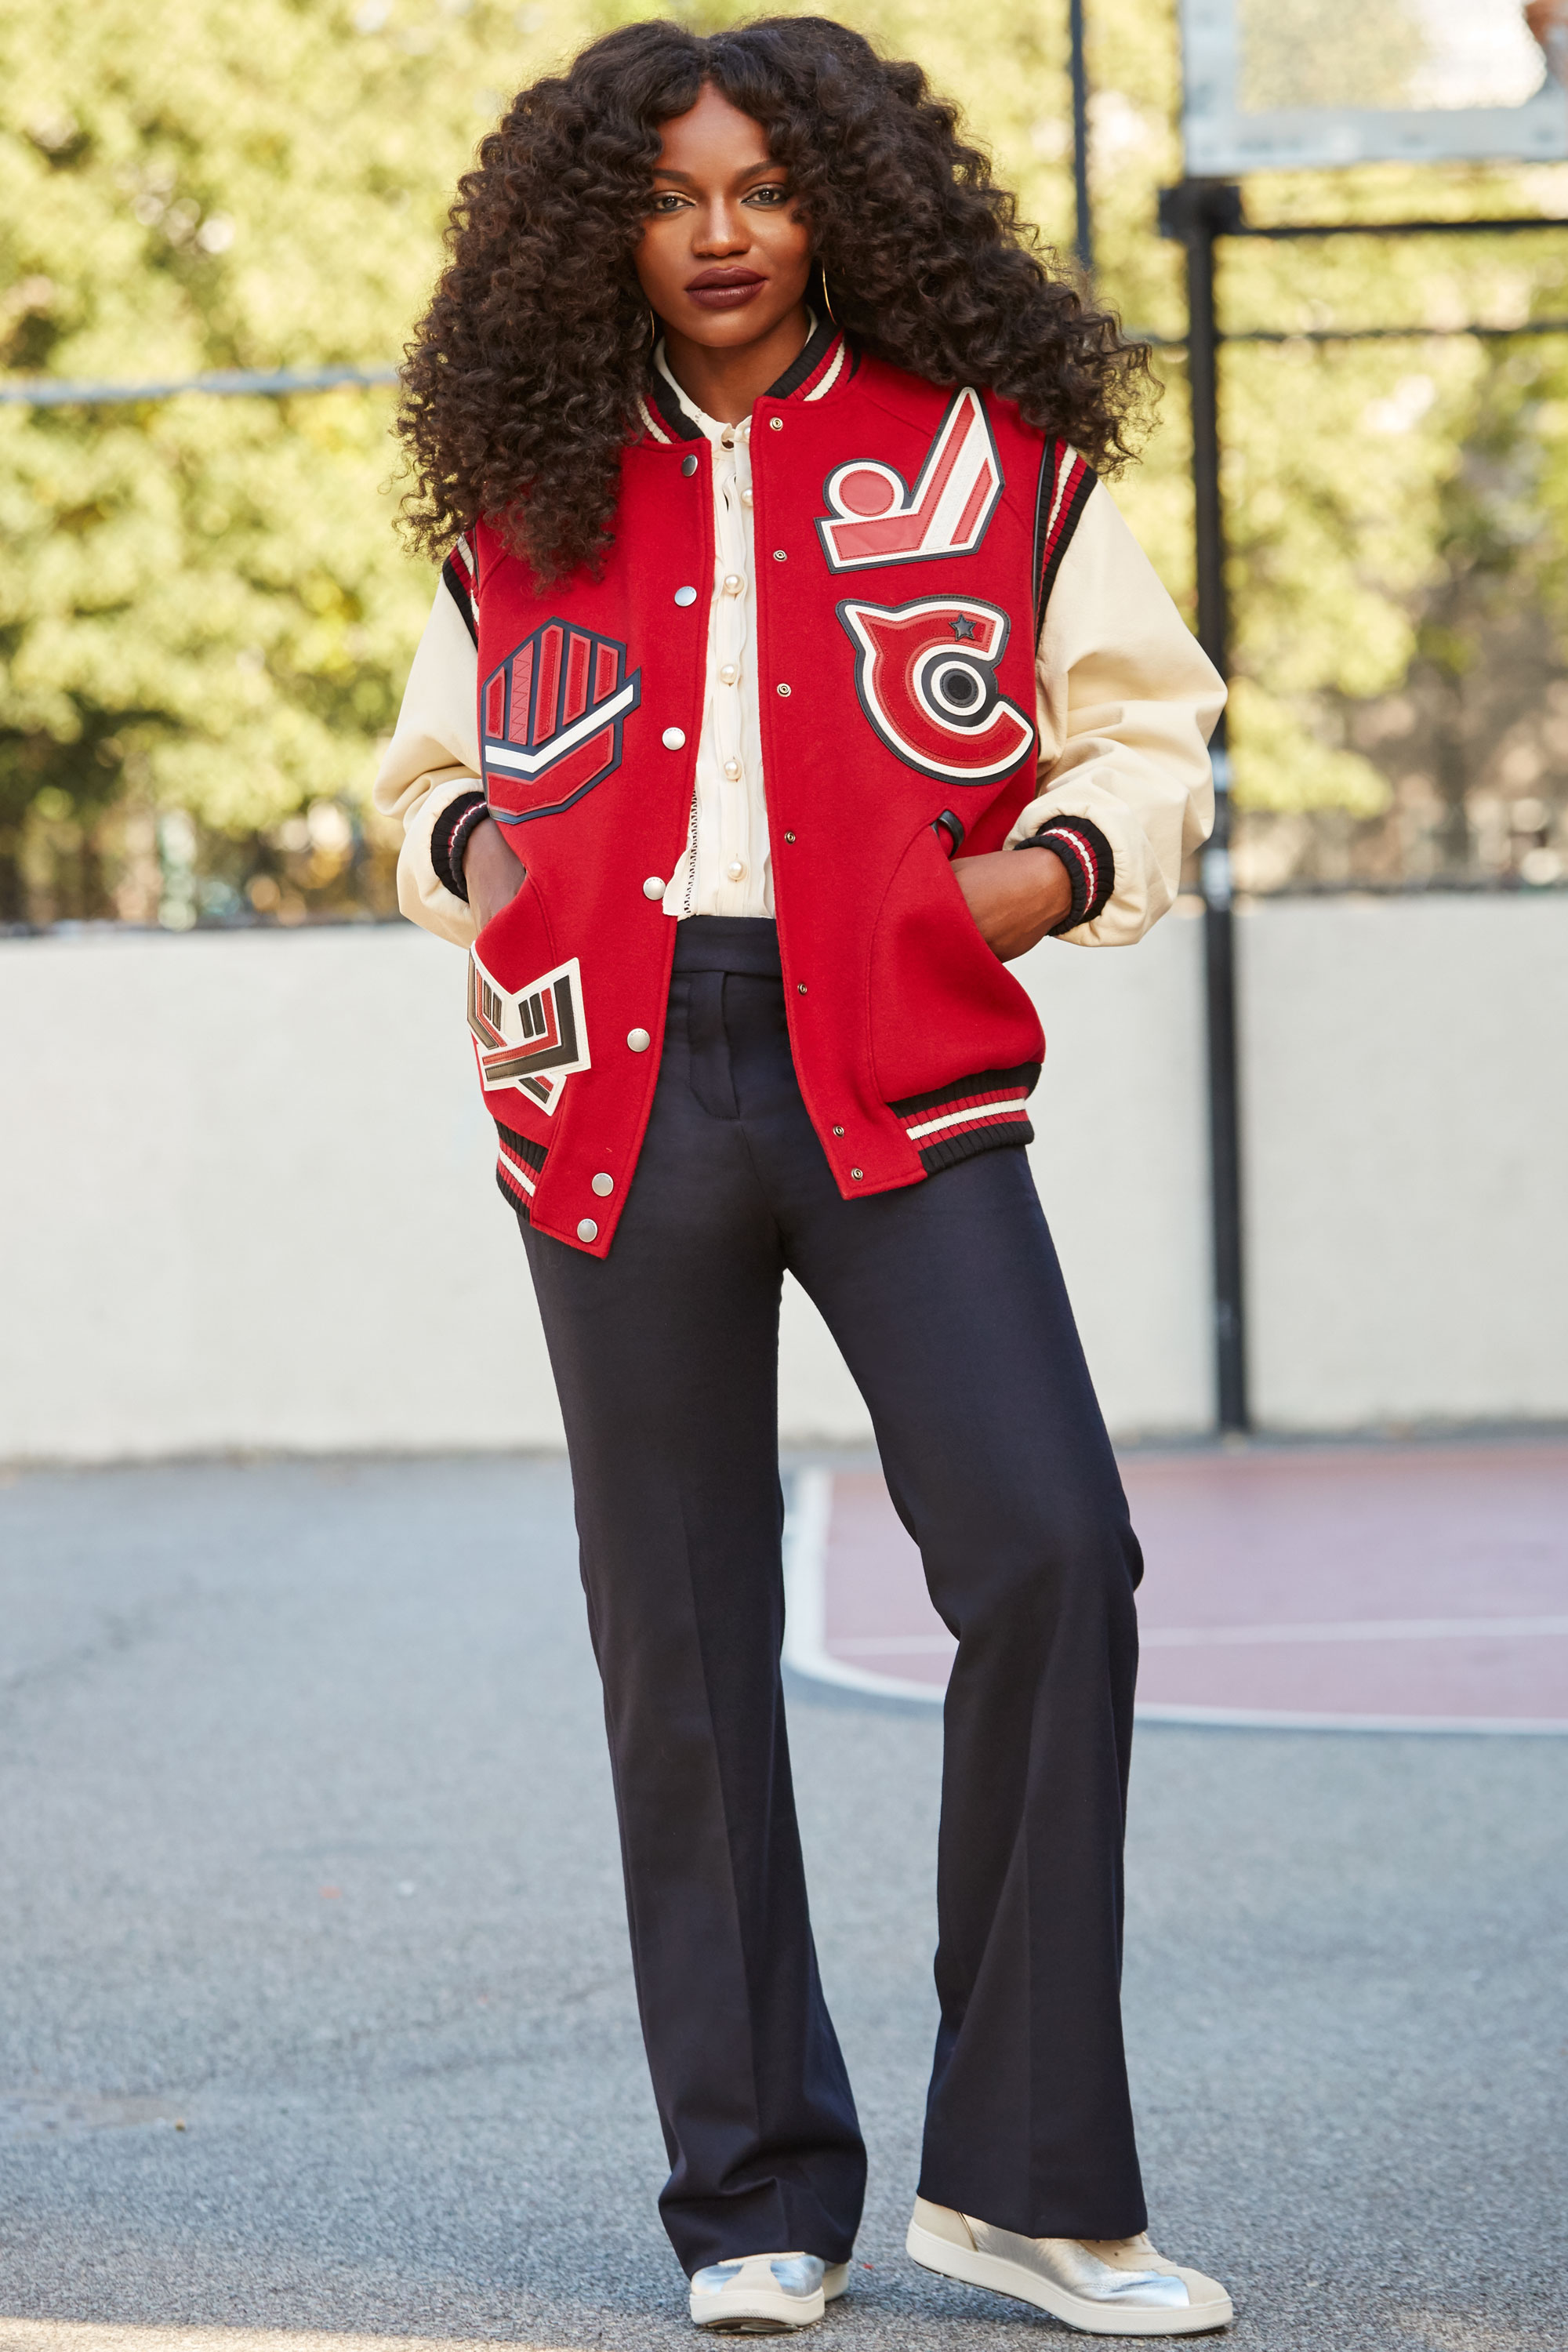 How to Wear a Varsity Letterman Jacket